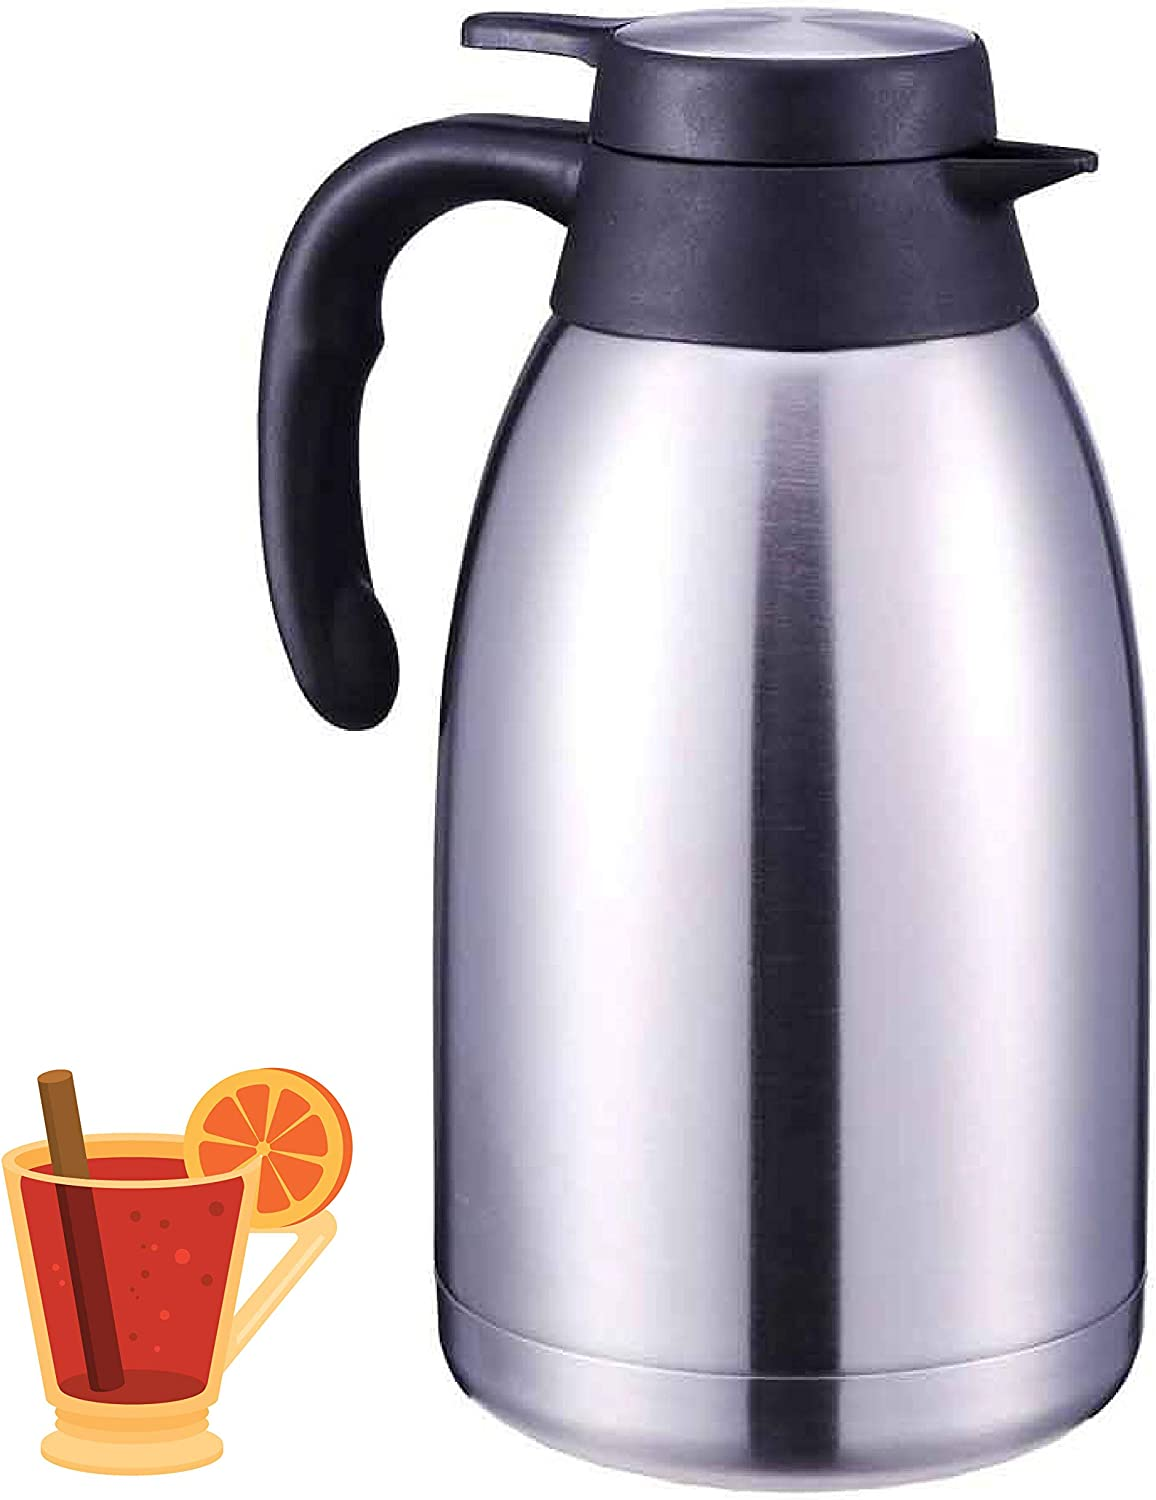 Up tp 12 Hours Heat Retention and 24 Hrs Cold Retention 64 Oz Coffee Karaffe Stainless Steel Insulated Double Walled Vacuum Thermos 2 Quart Thermal Coffee Carafe by Korkmaz A596-02